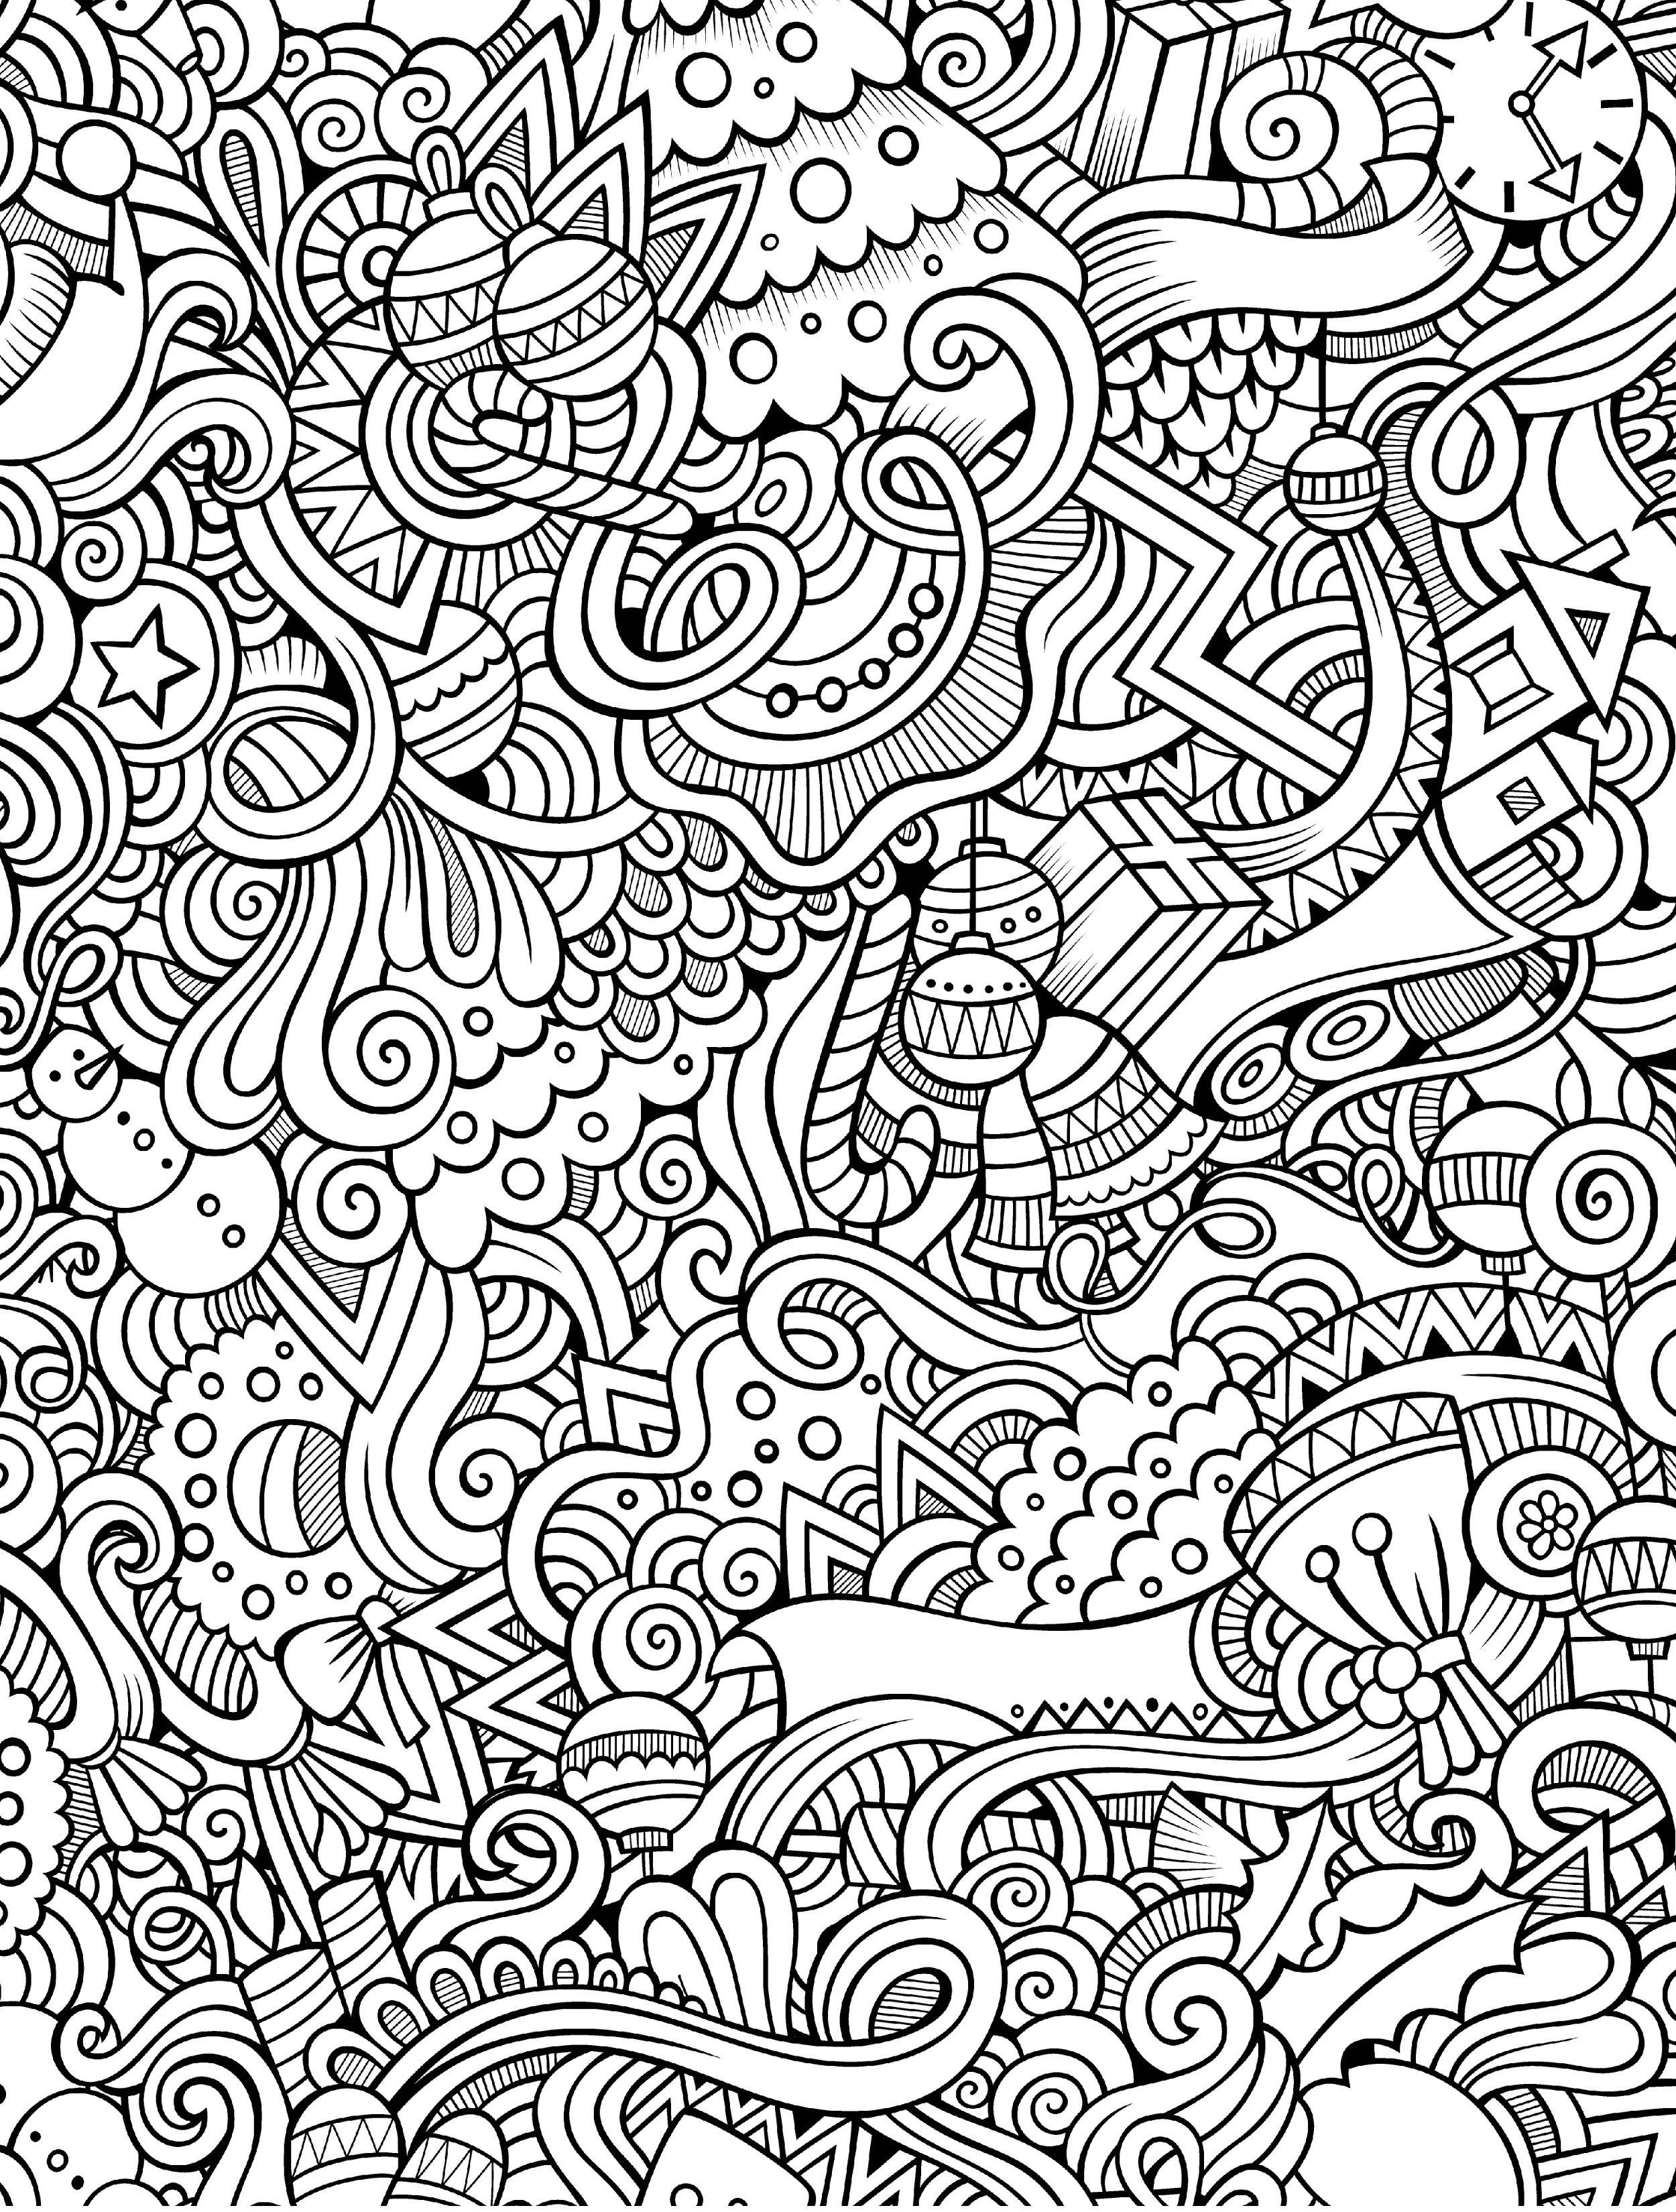 10 Free Printable Holiday Adult Coloring Pages | Coloring Pages - Free Printable Coloring Books